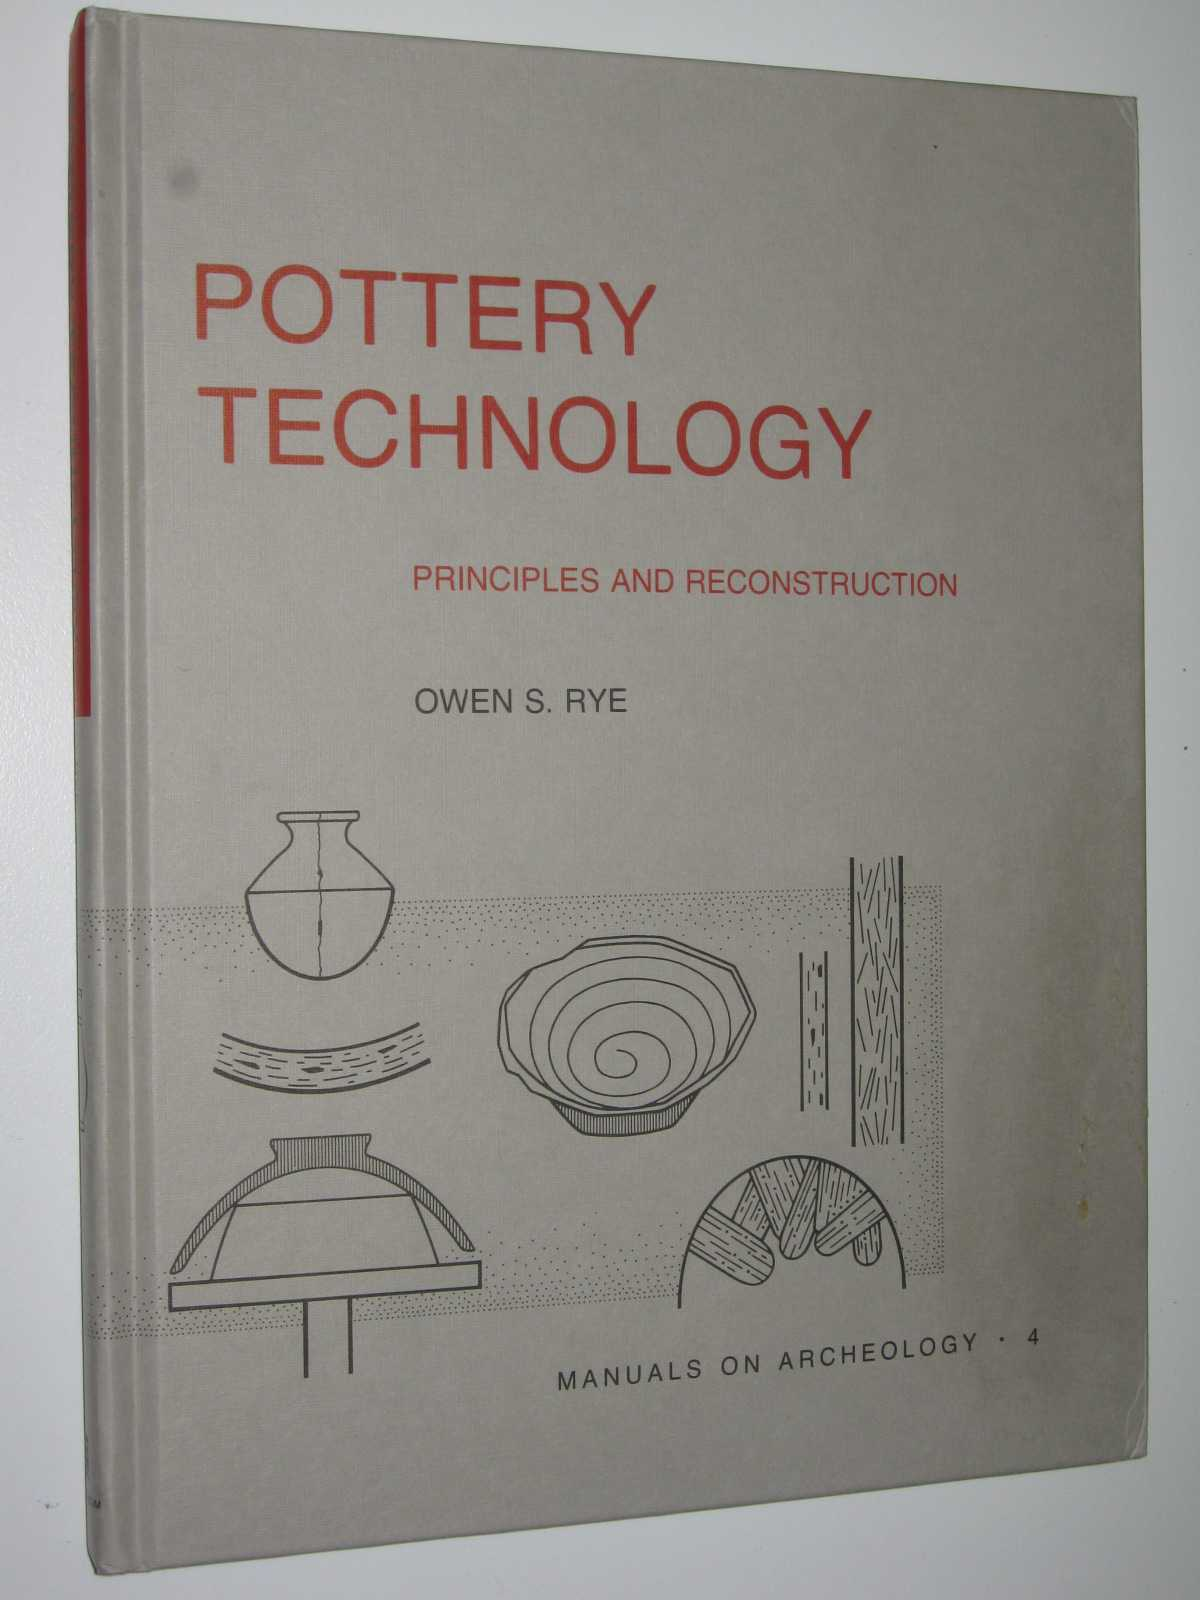 Image for Pottery Technology: Principles and Reconstruction - Manuals on Archaeology Series #4